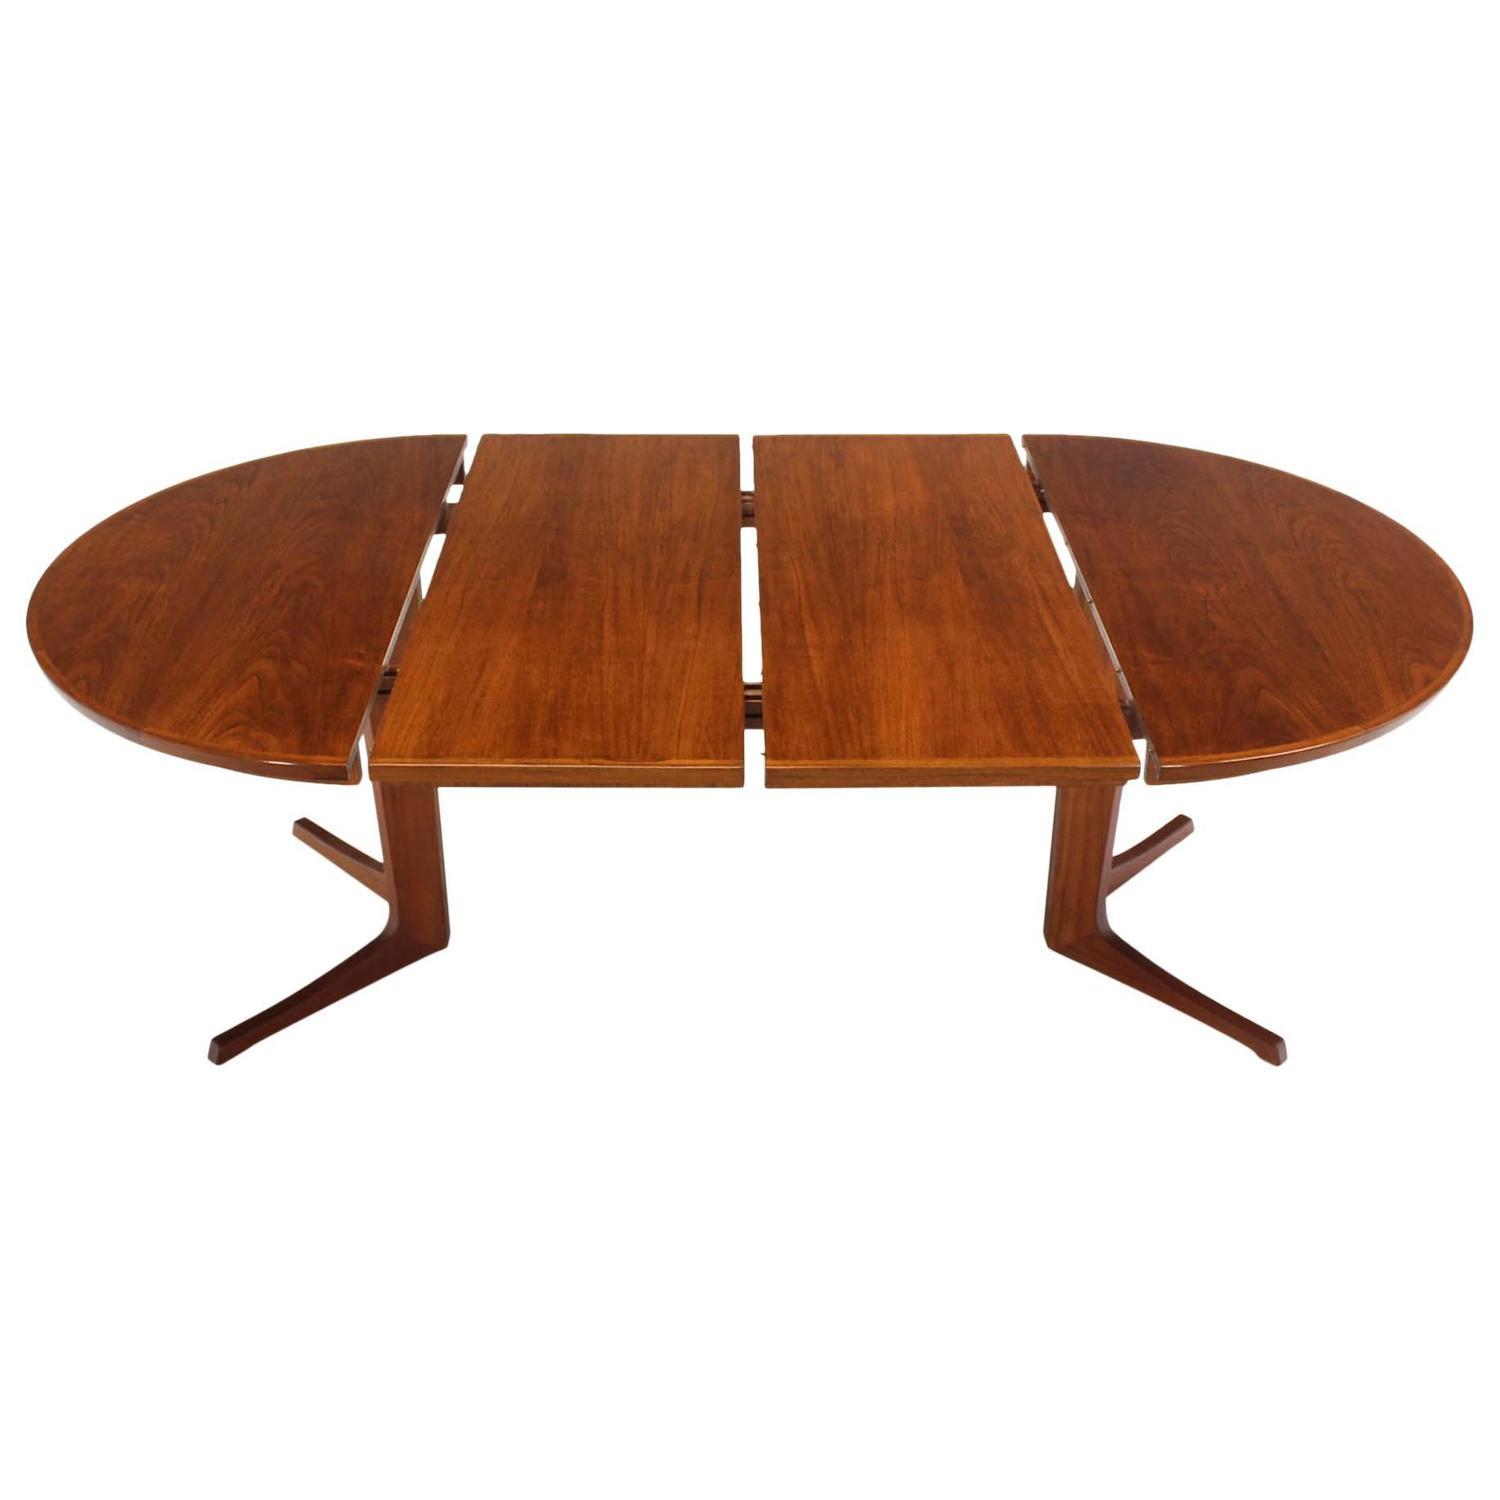 Round danish mid century modern teak dining table with two for Mid century modern dining table